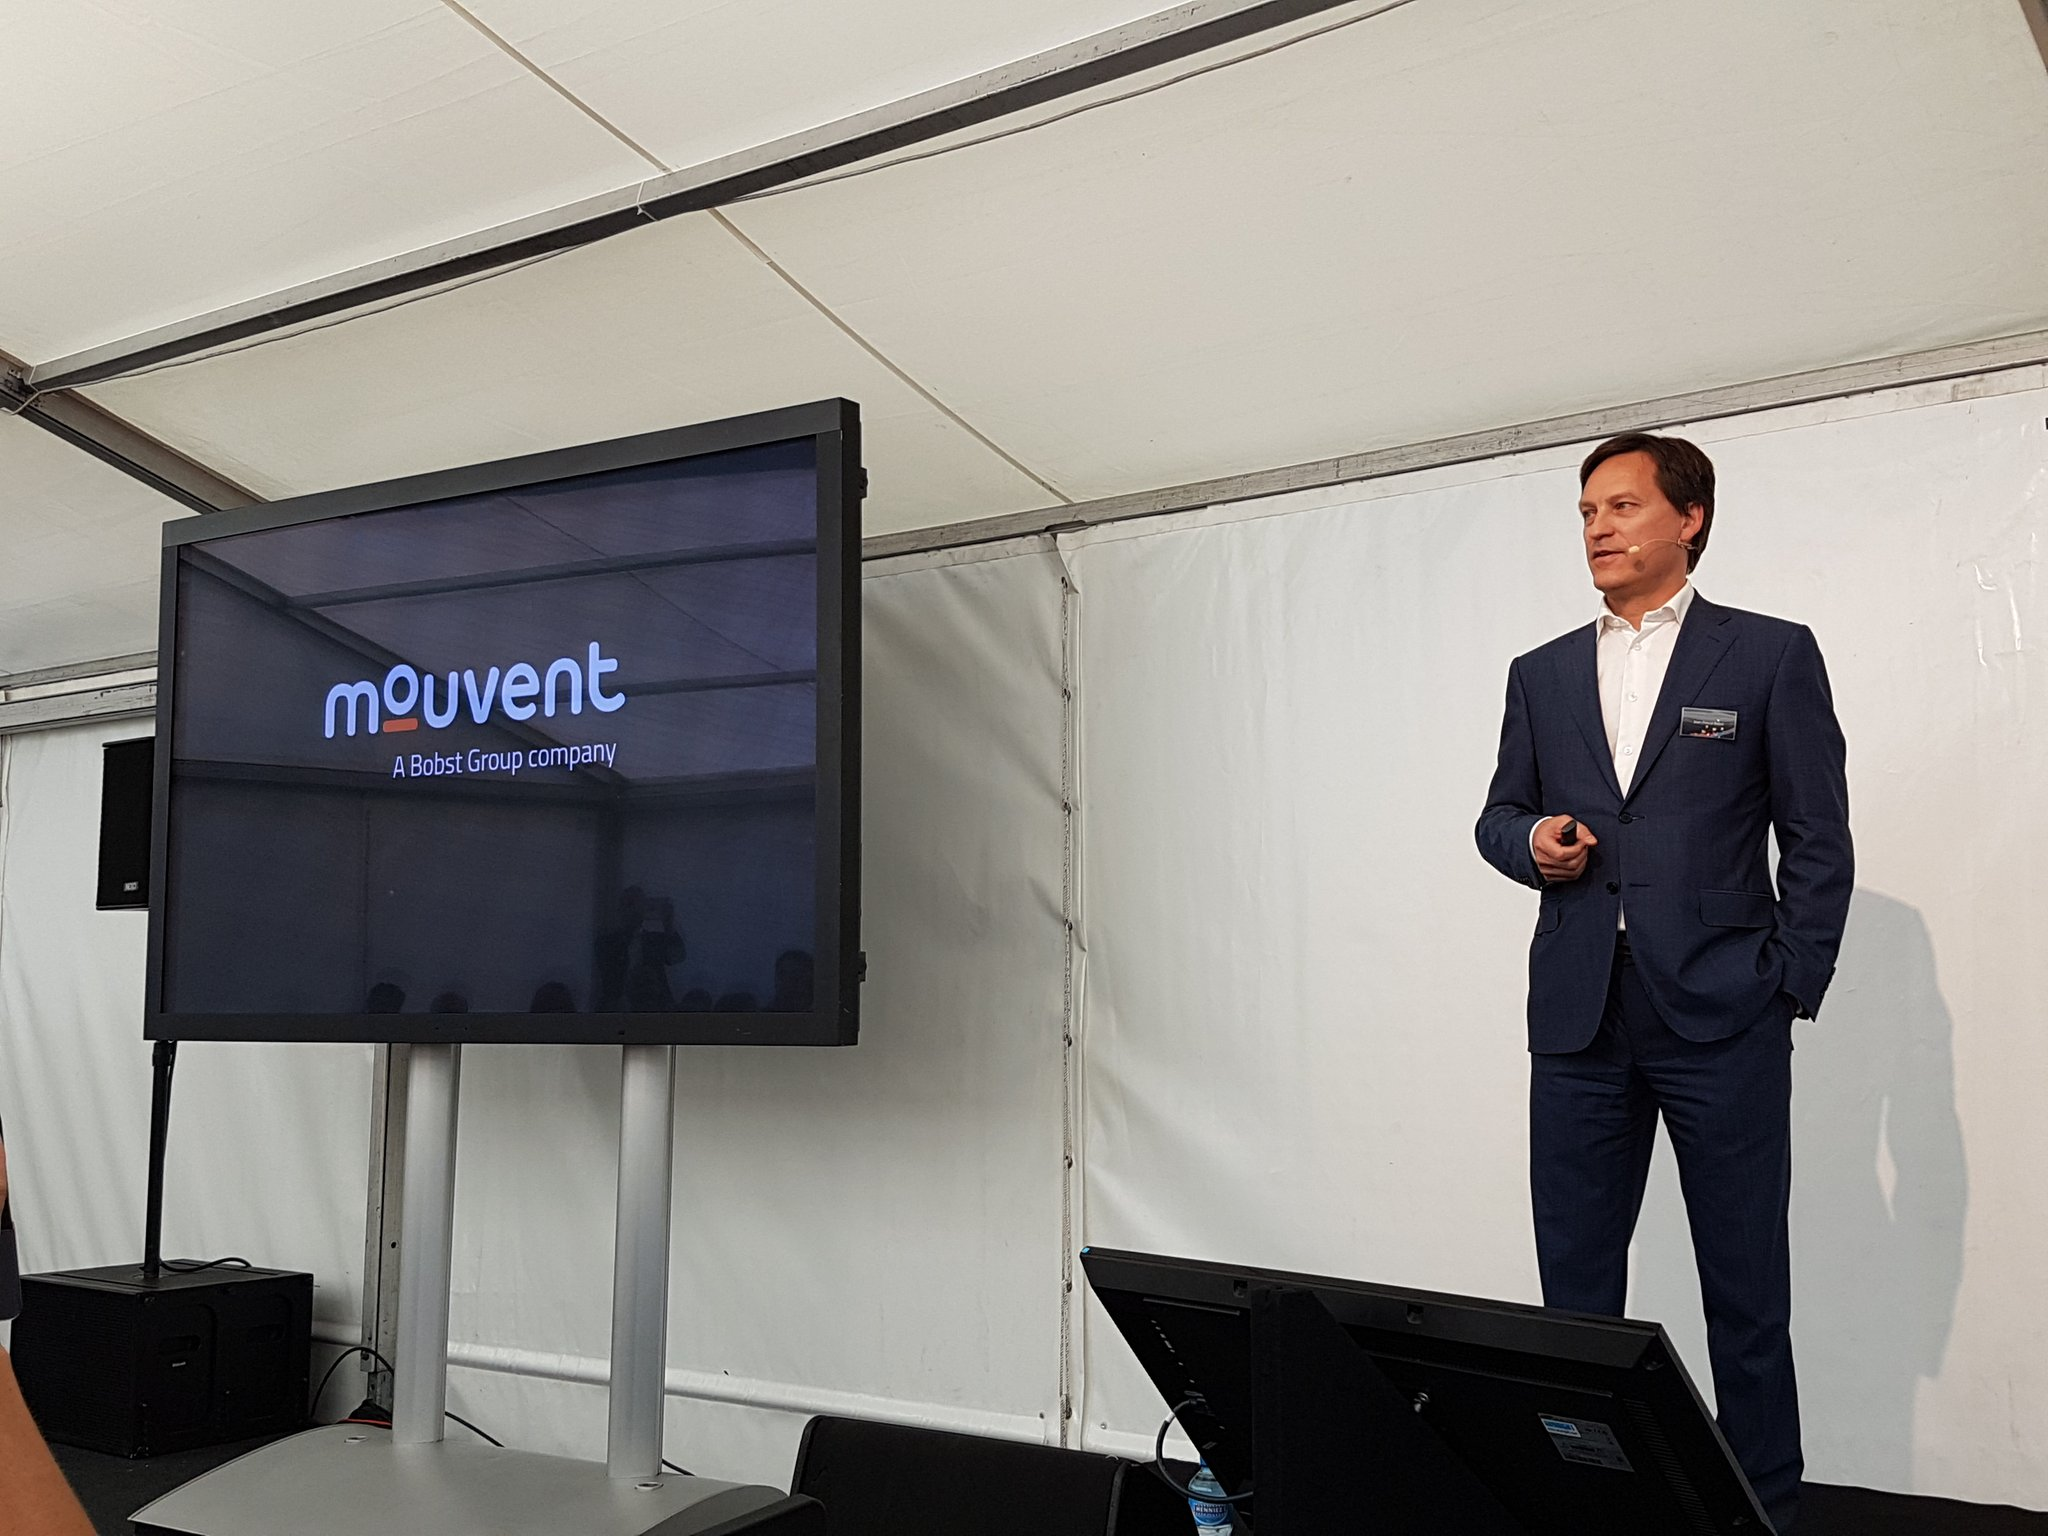 New #Bobst company @MouventDigital will be a real testimony of innovation spirit and innovation power. Proud to be part of its first steps https://t.co/npLXEkwhbV